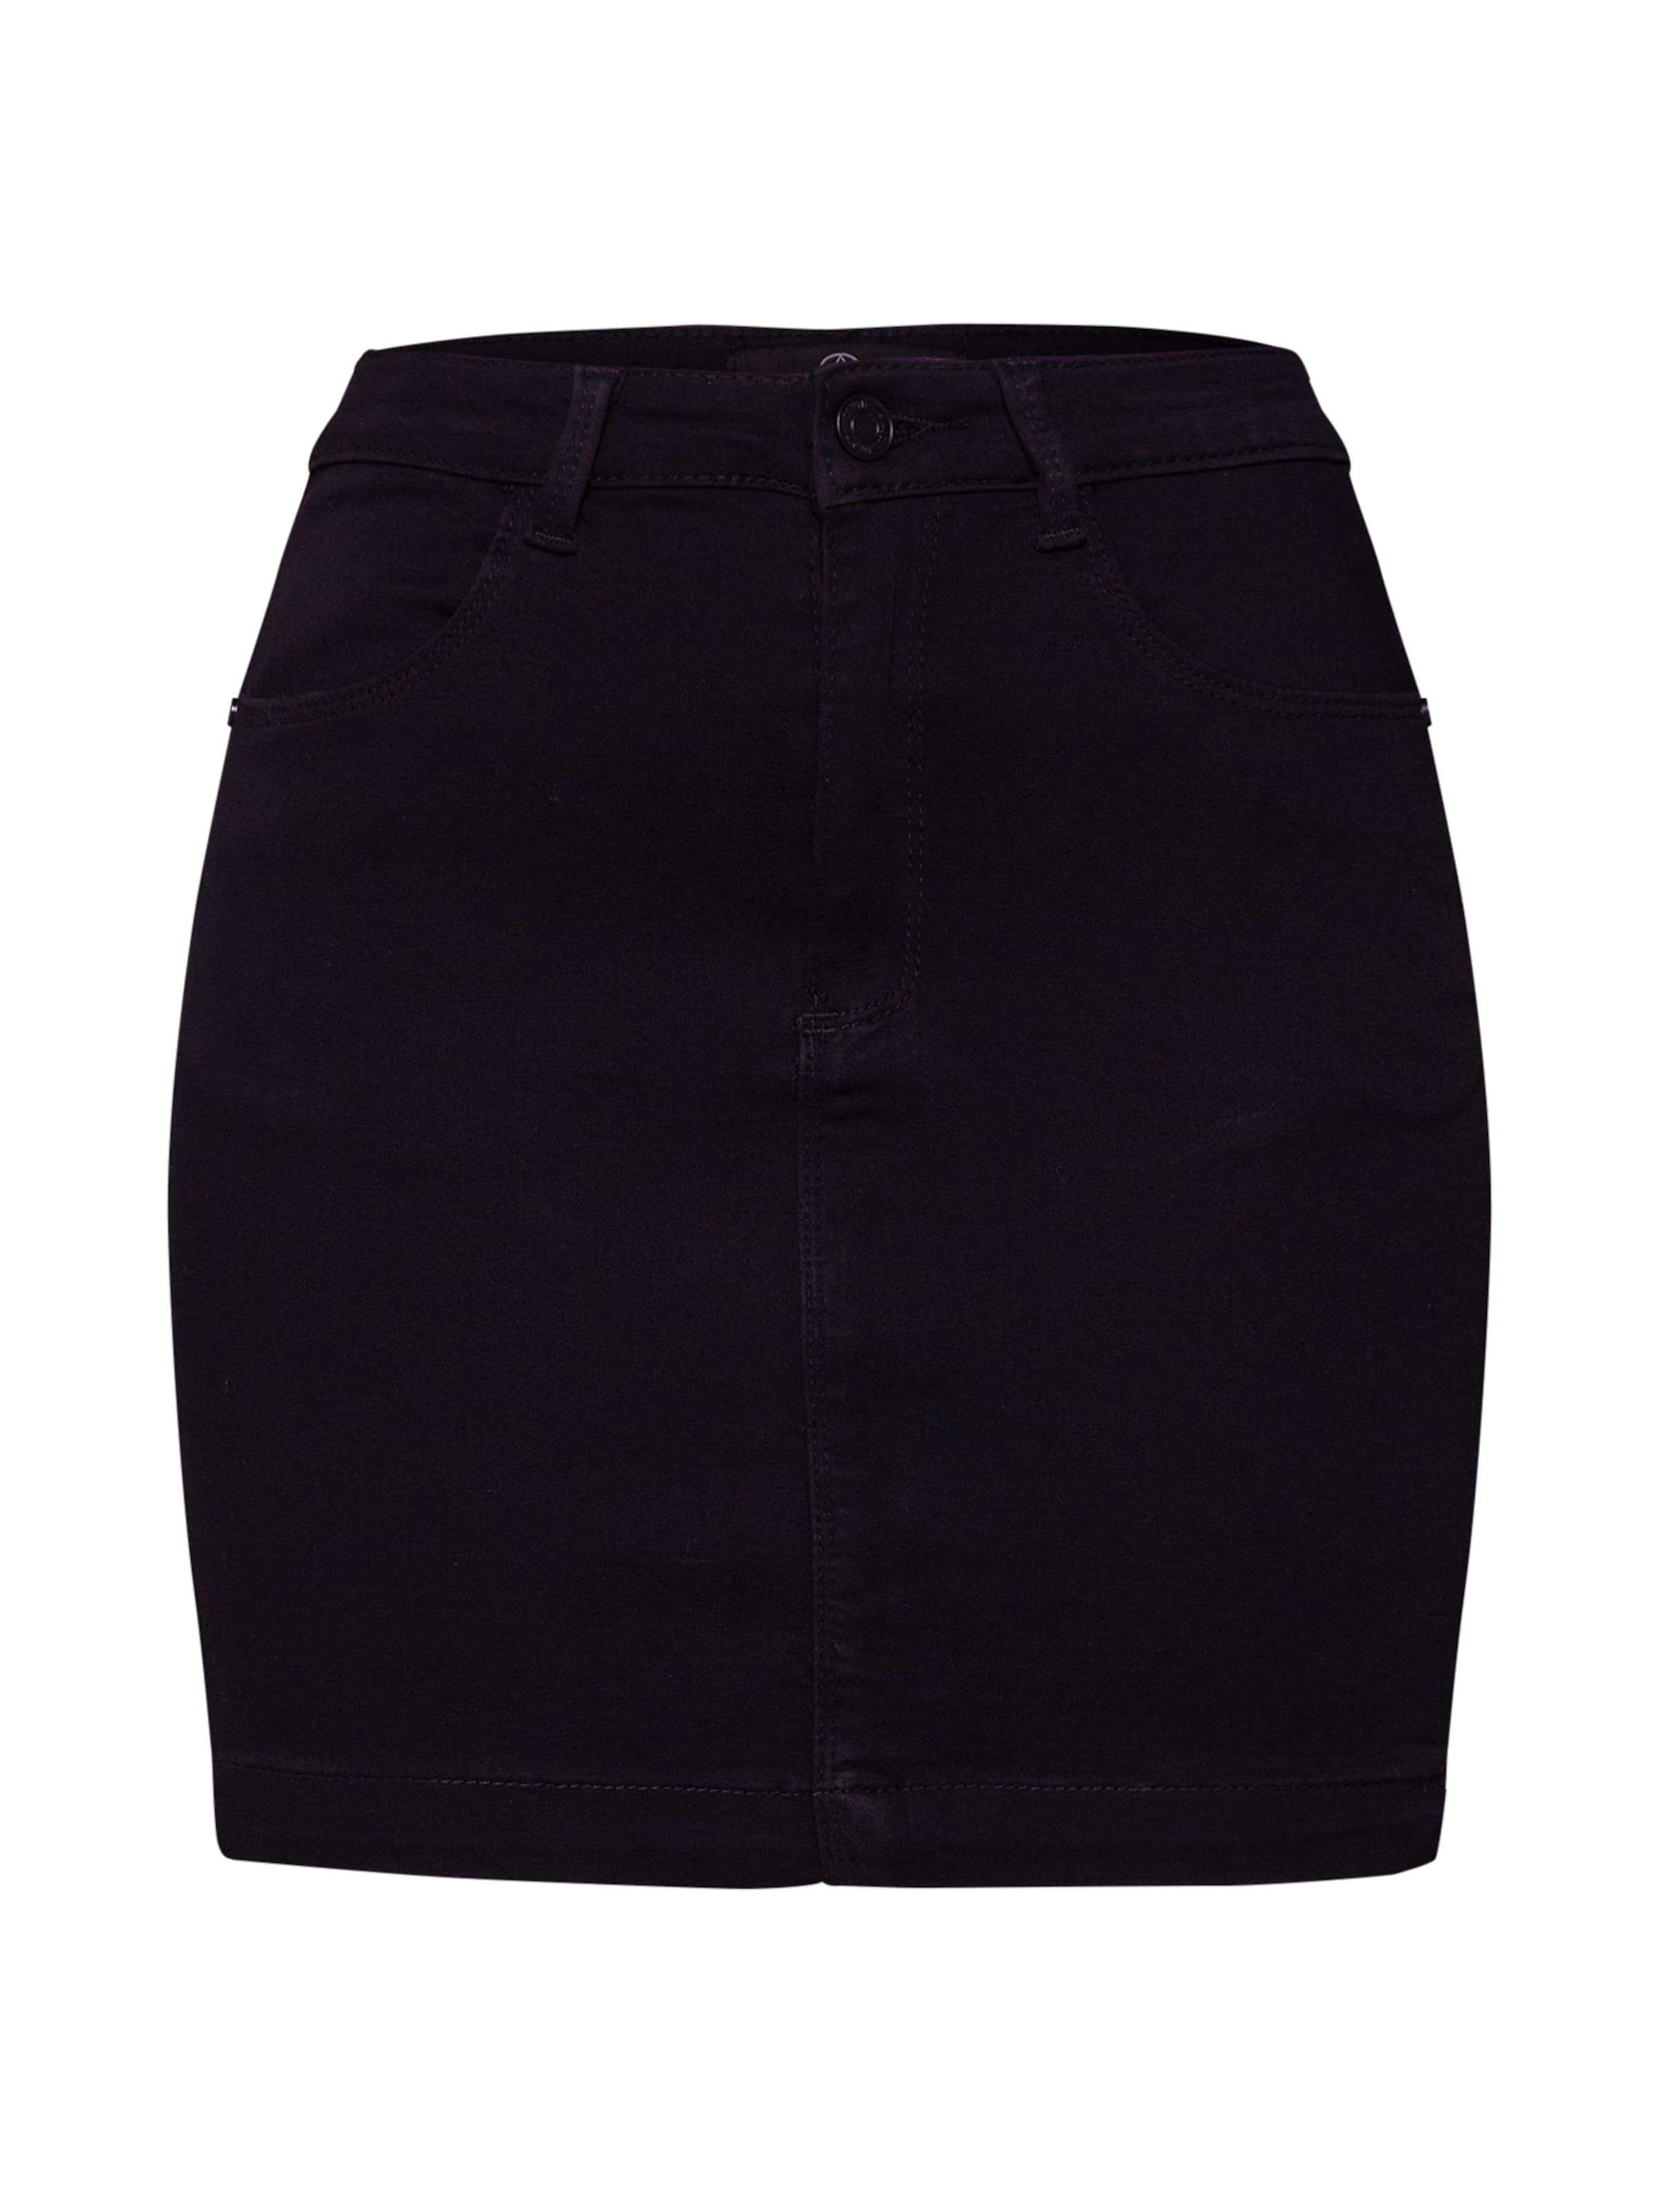 Skirt' In Schwarz Mini Rocke Missguided 'superstretch OPn8wk0